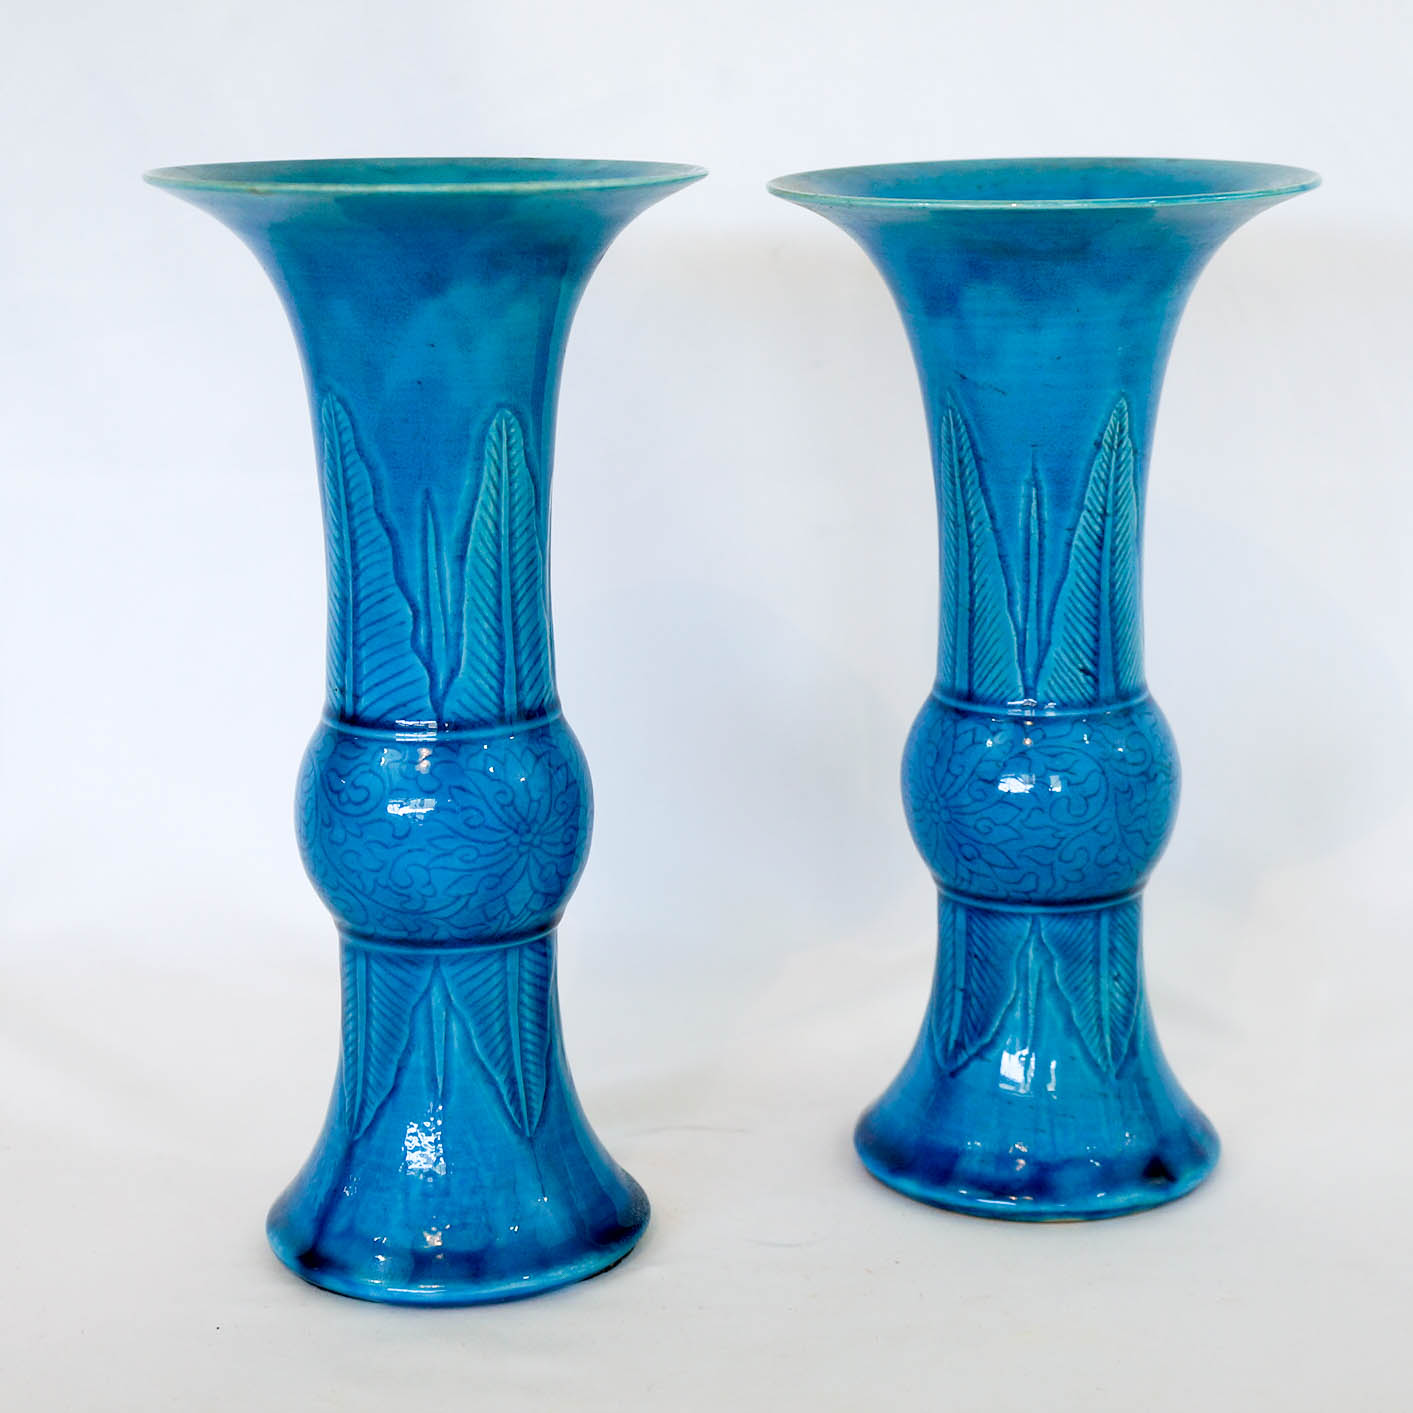 A Pair of Chinese Turquoise Glazed Gu Vases